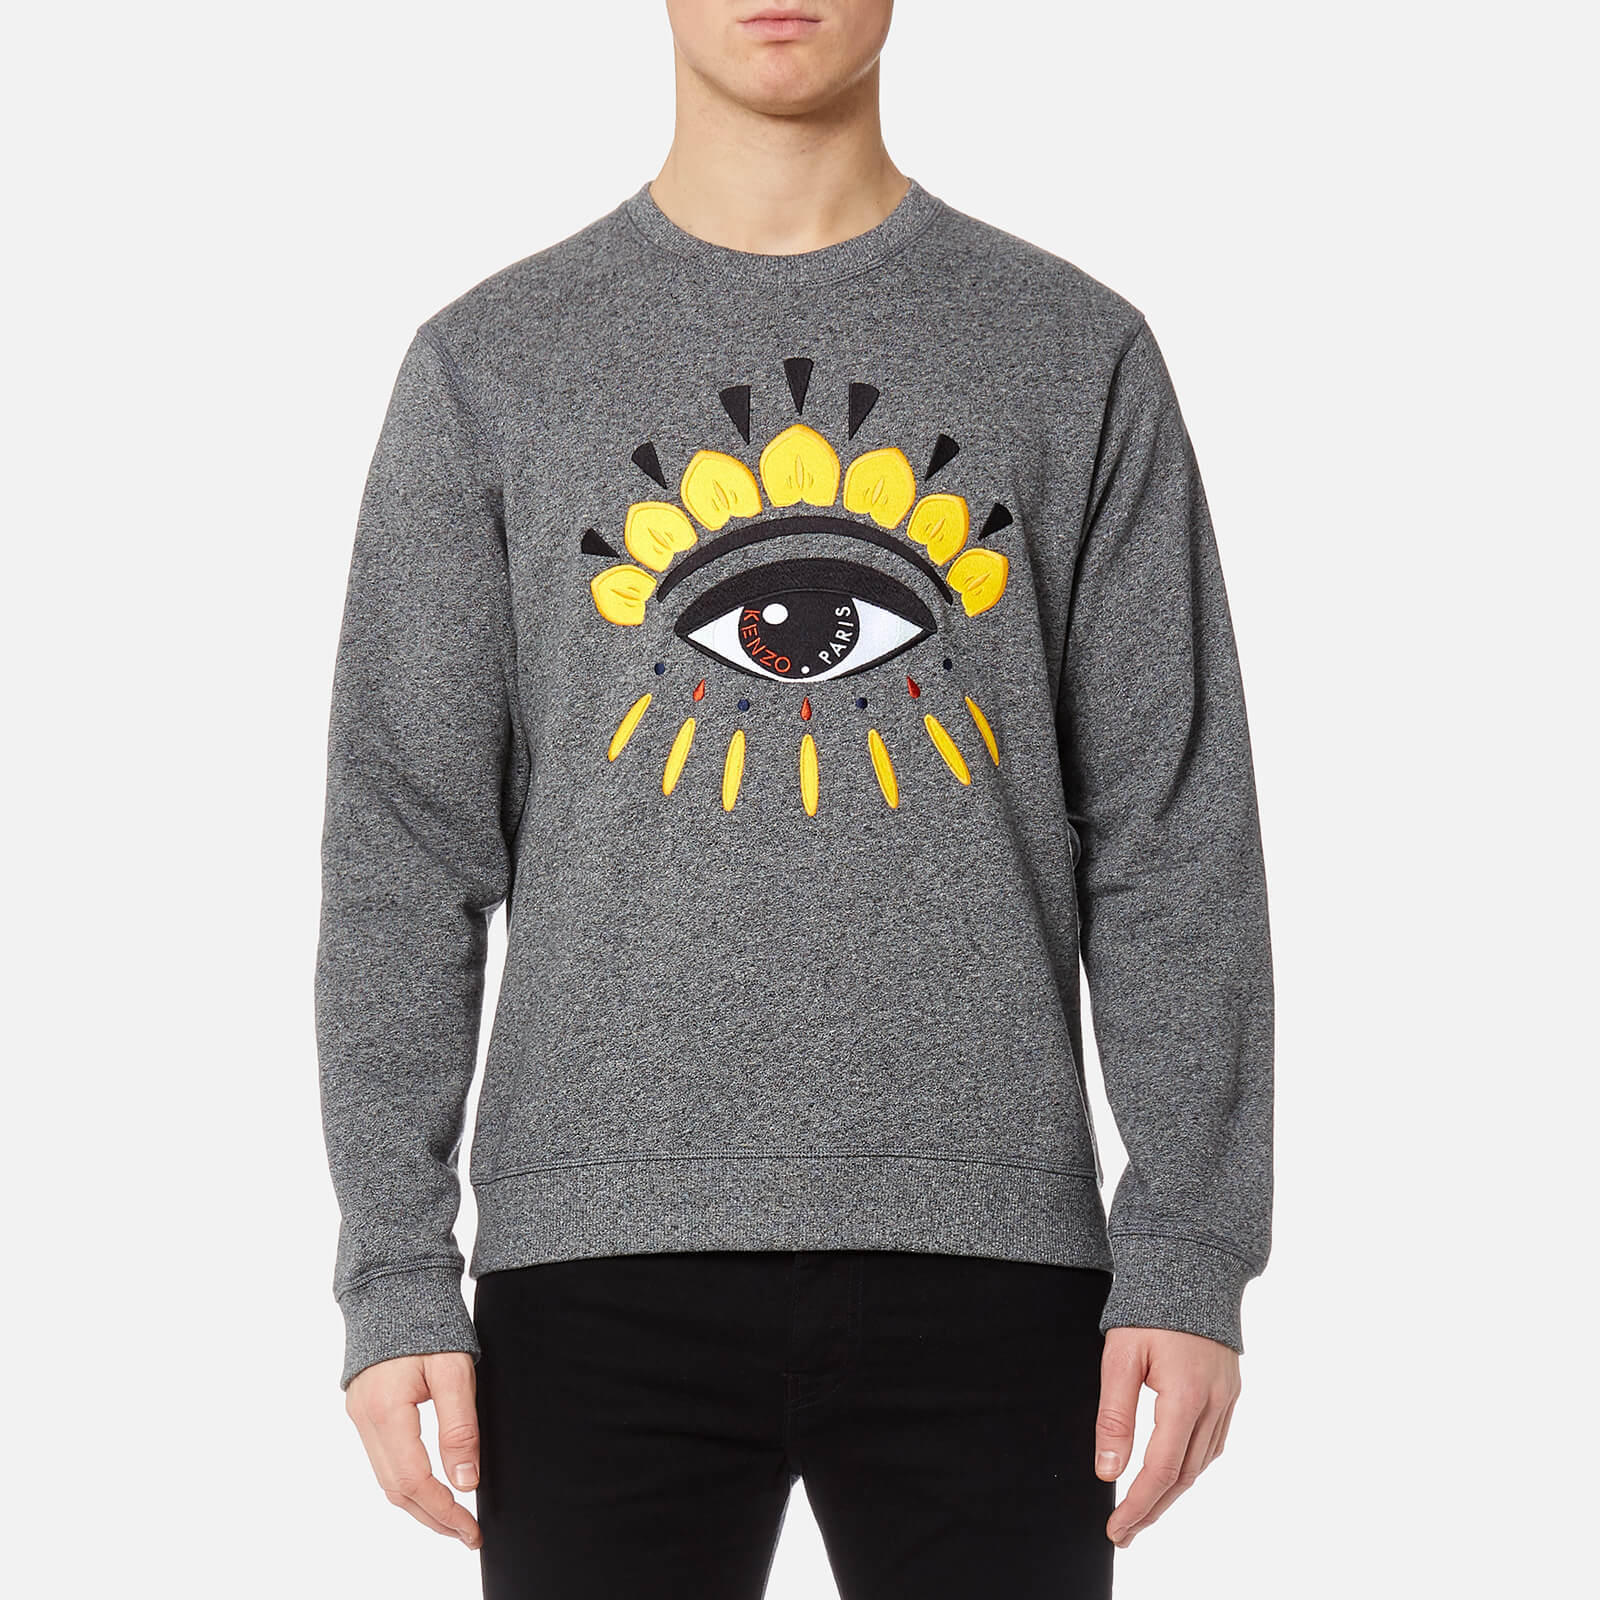 b1d5b5a4d2d5f KENZO Men's Classic Eye Sweatshirt - Anthracite - Free UK Delivery over £50